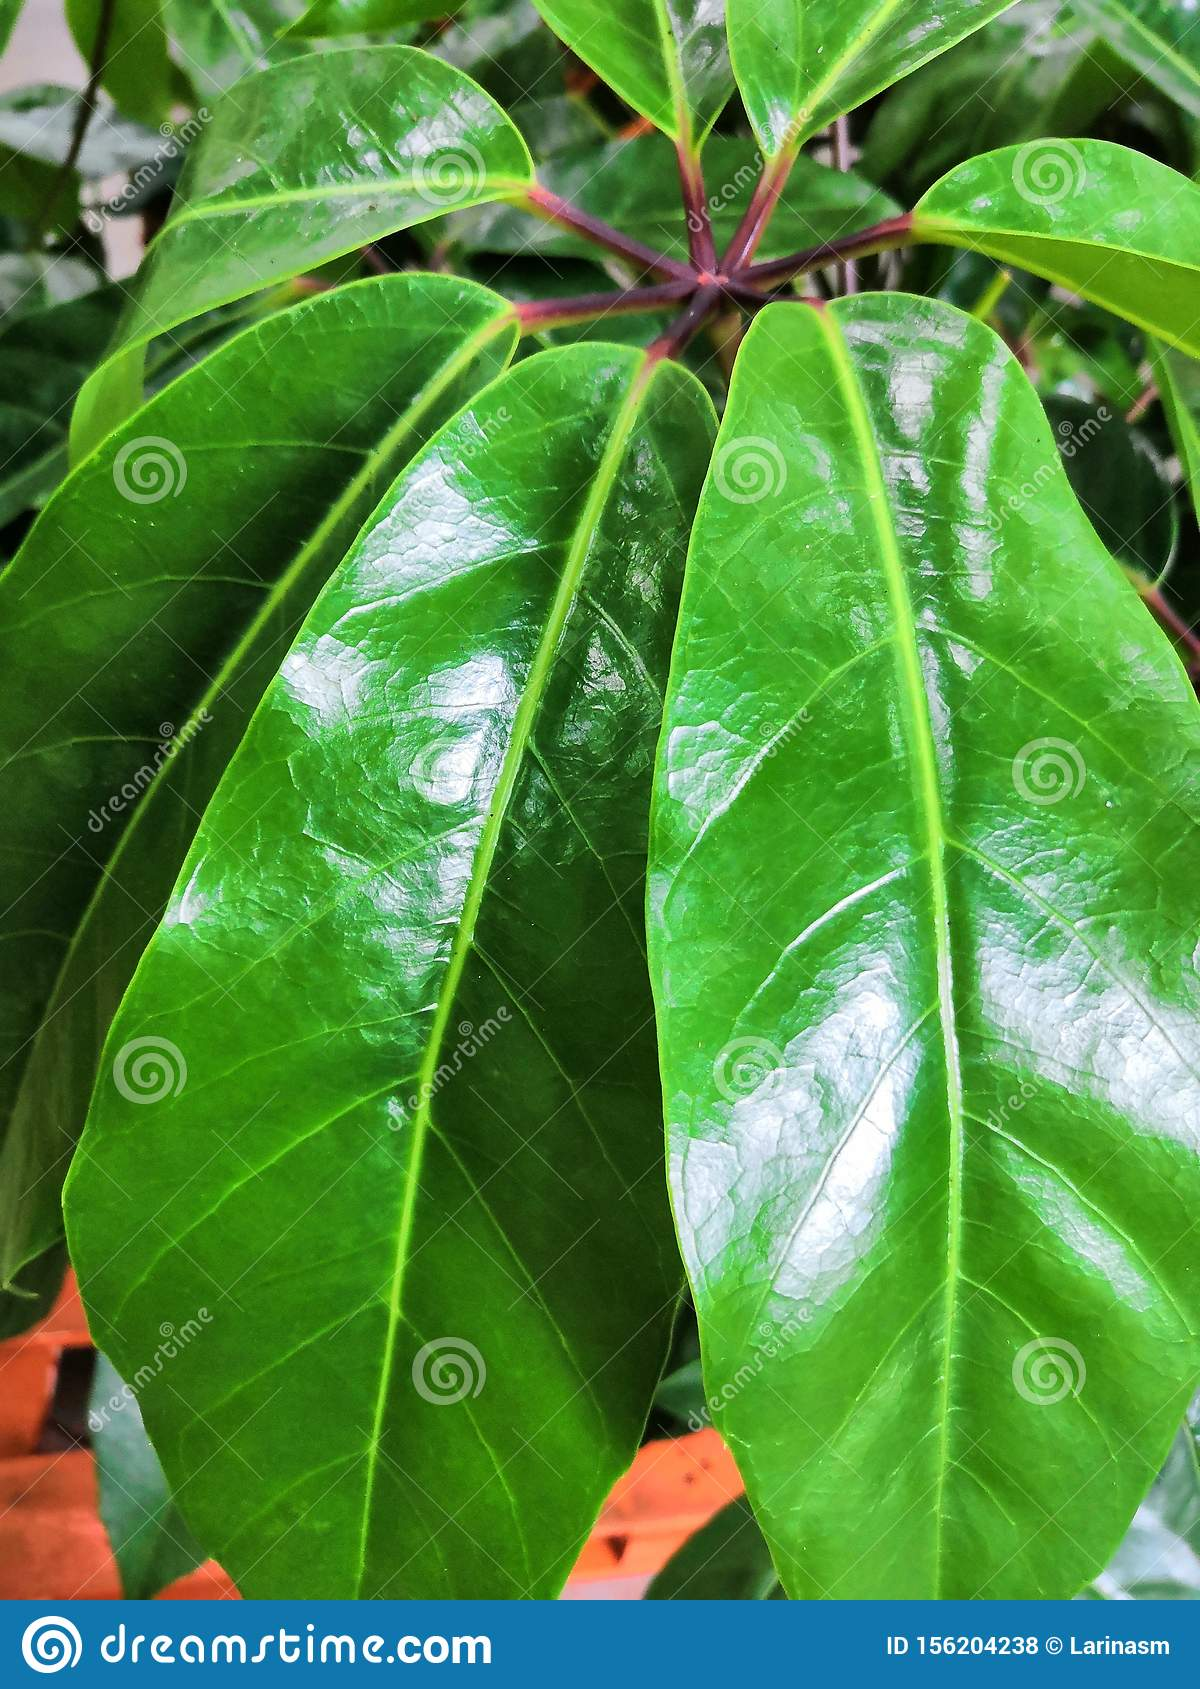 Green Leaf Background In Tropical Forest For Graphic Design